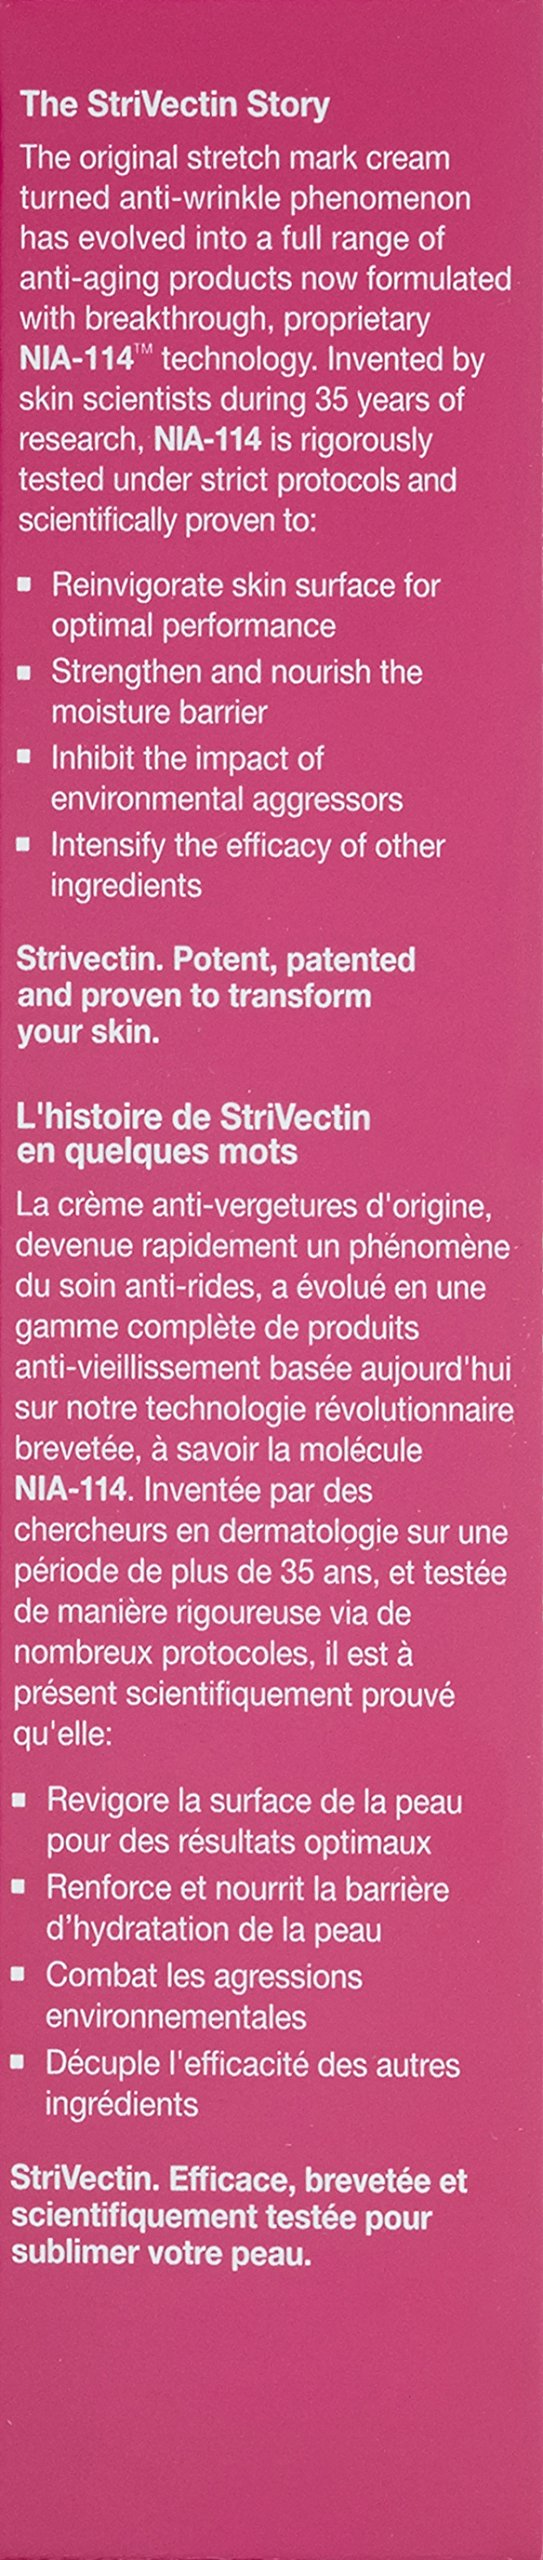 StriVectin Intensive Eye Concentrate for Wrinkles, 1 fl. oz. by StriVectin (Image #4)